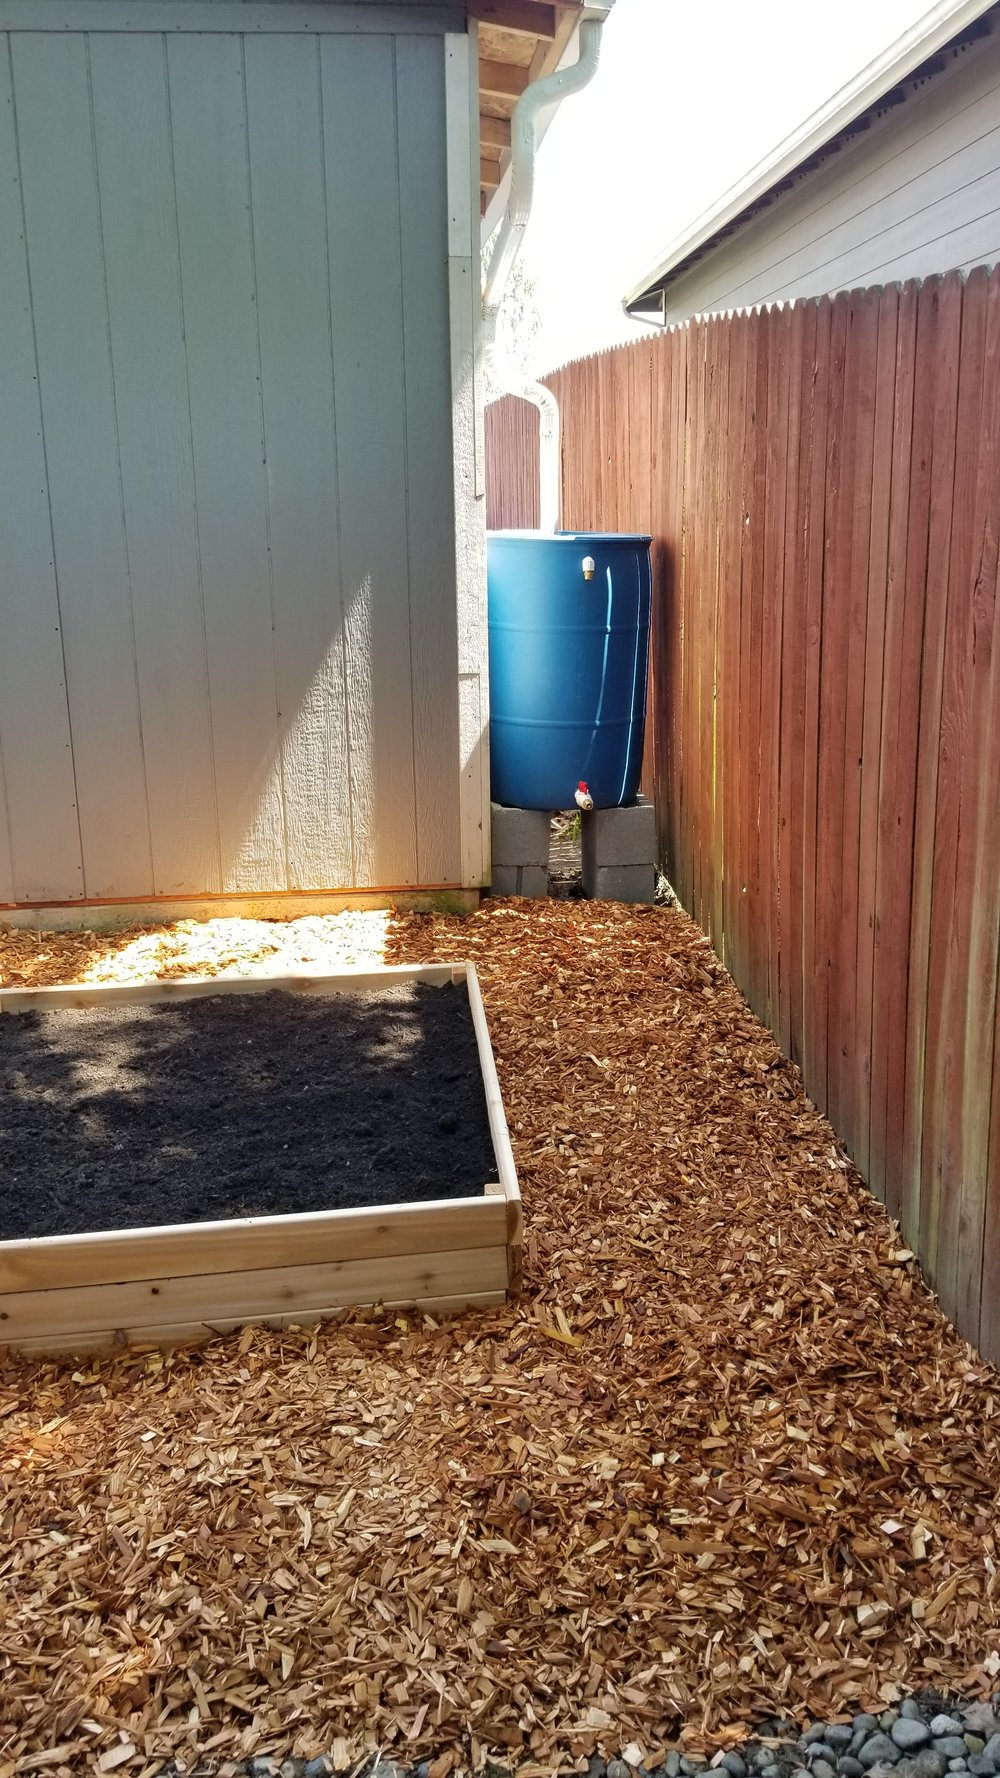 AFTER: Cedar chips are added around the bed to keep down weeds and grass, and provide a permeable surface so rainwater can infiltrate into the ground.